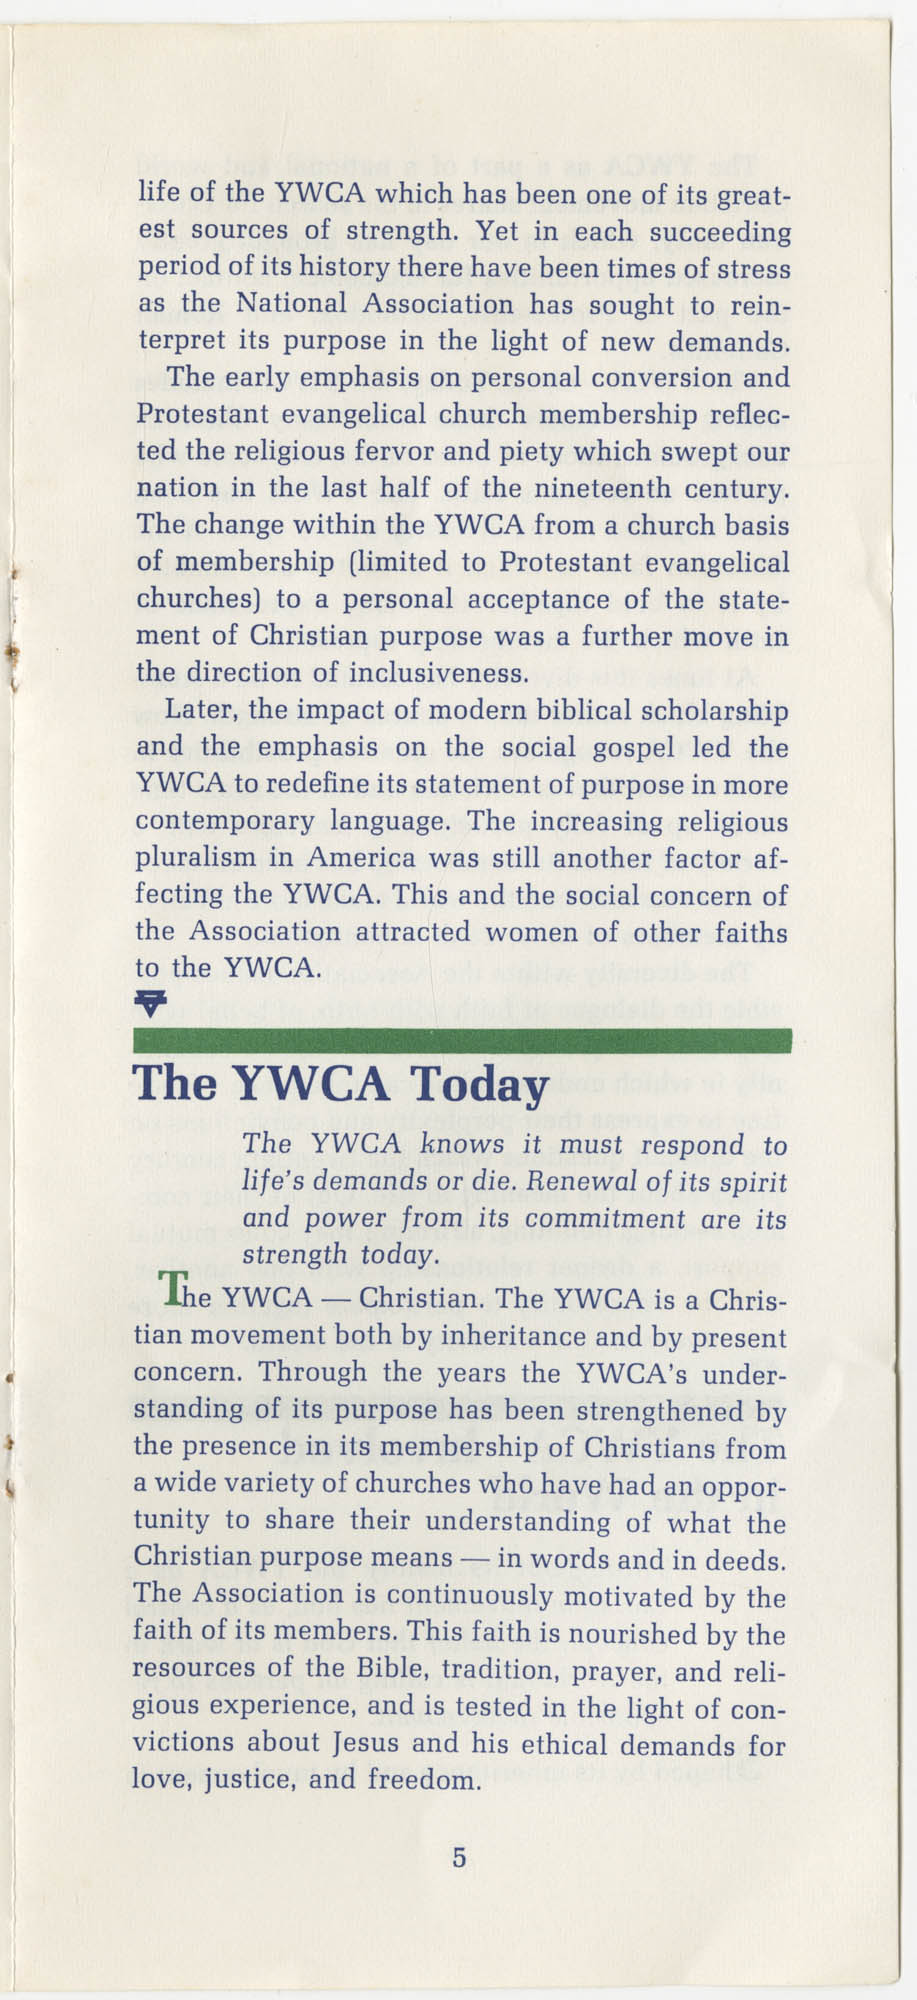 The Y.W.C.A.: A Christian Movement Open to the World, Page 5